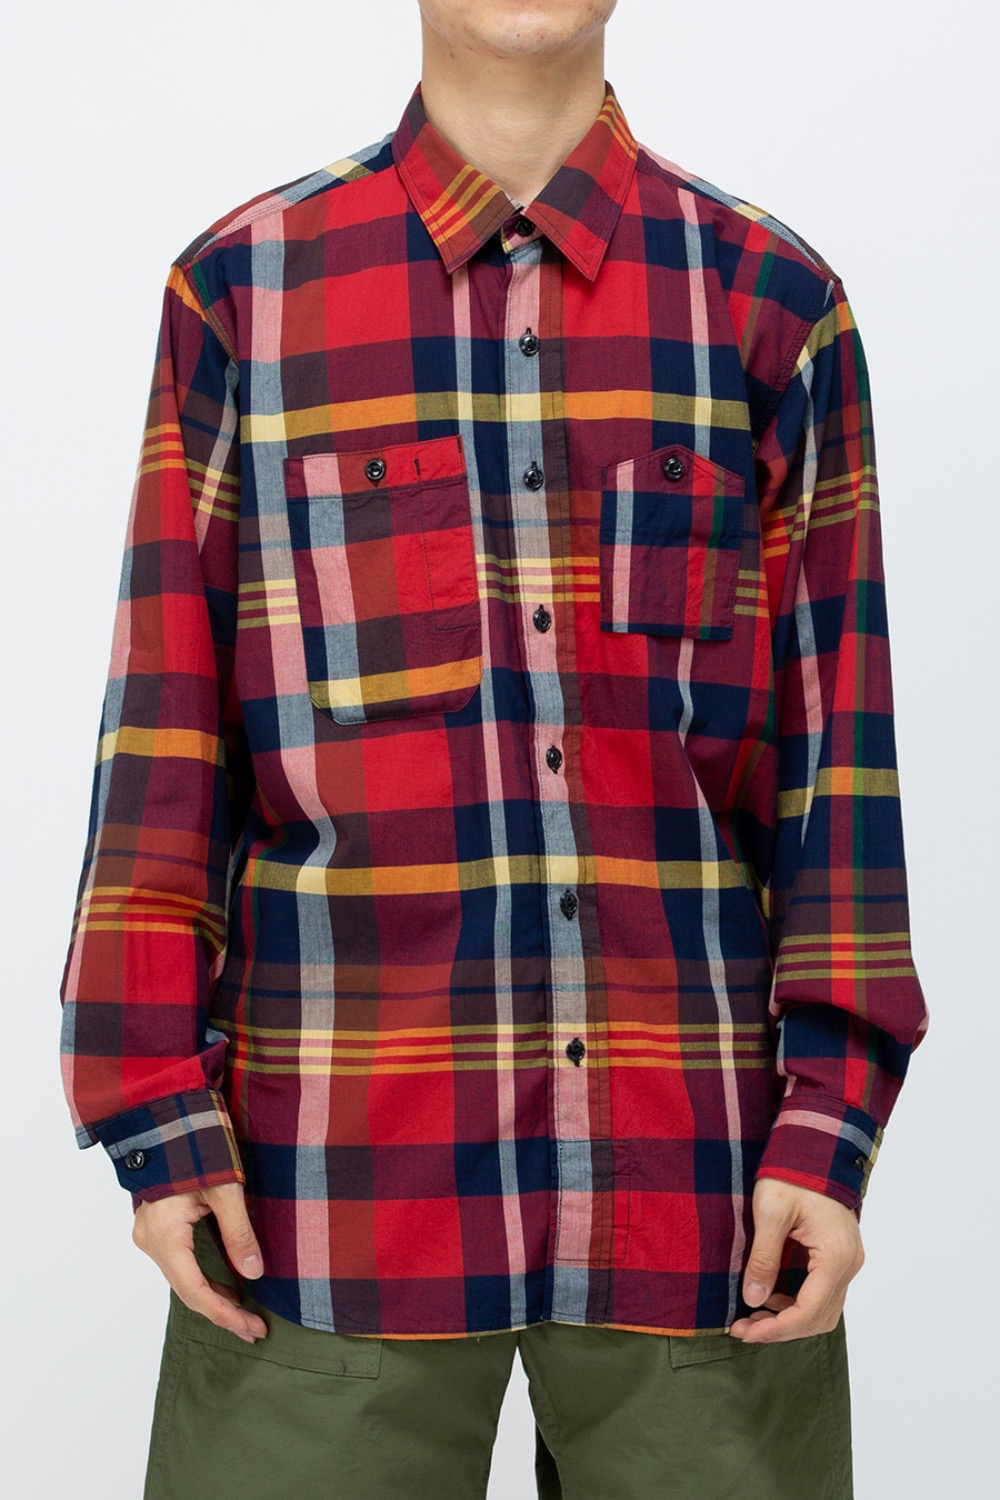 WORK SHIRT COTTON BIG MADRAS PLAID RED/NAVY